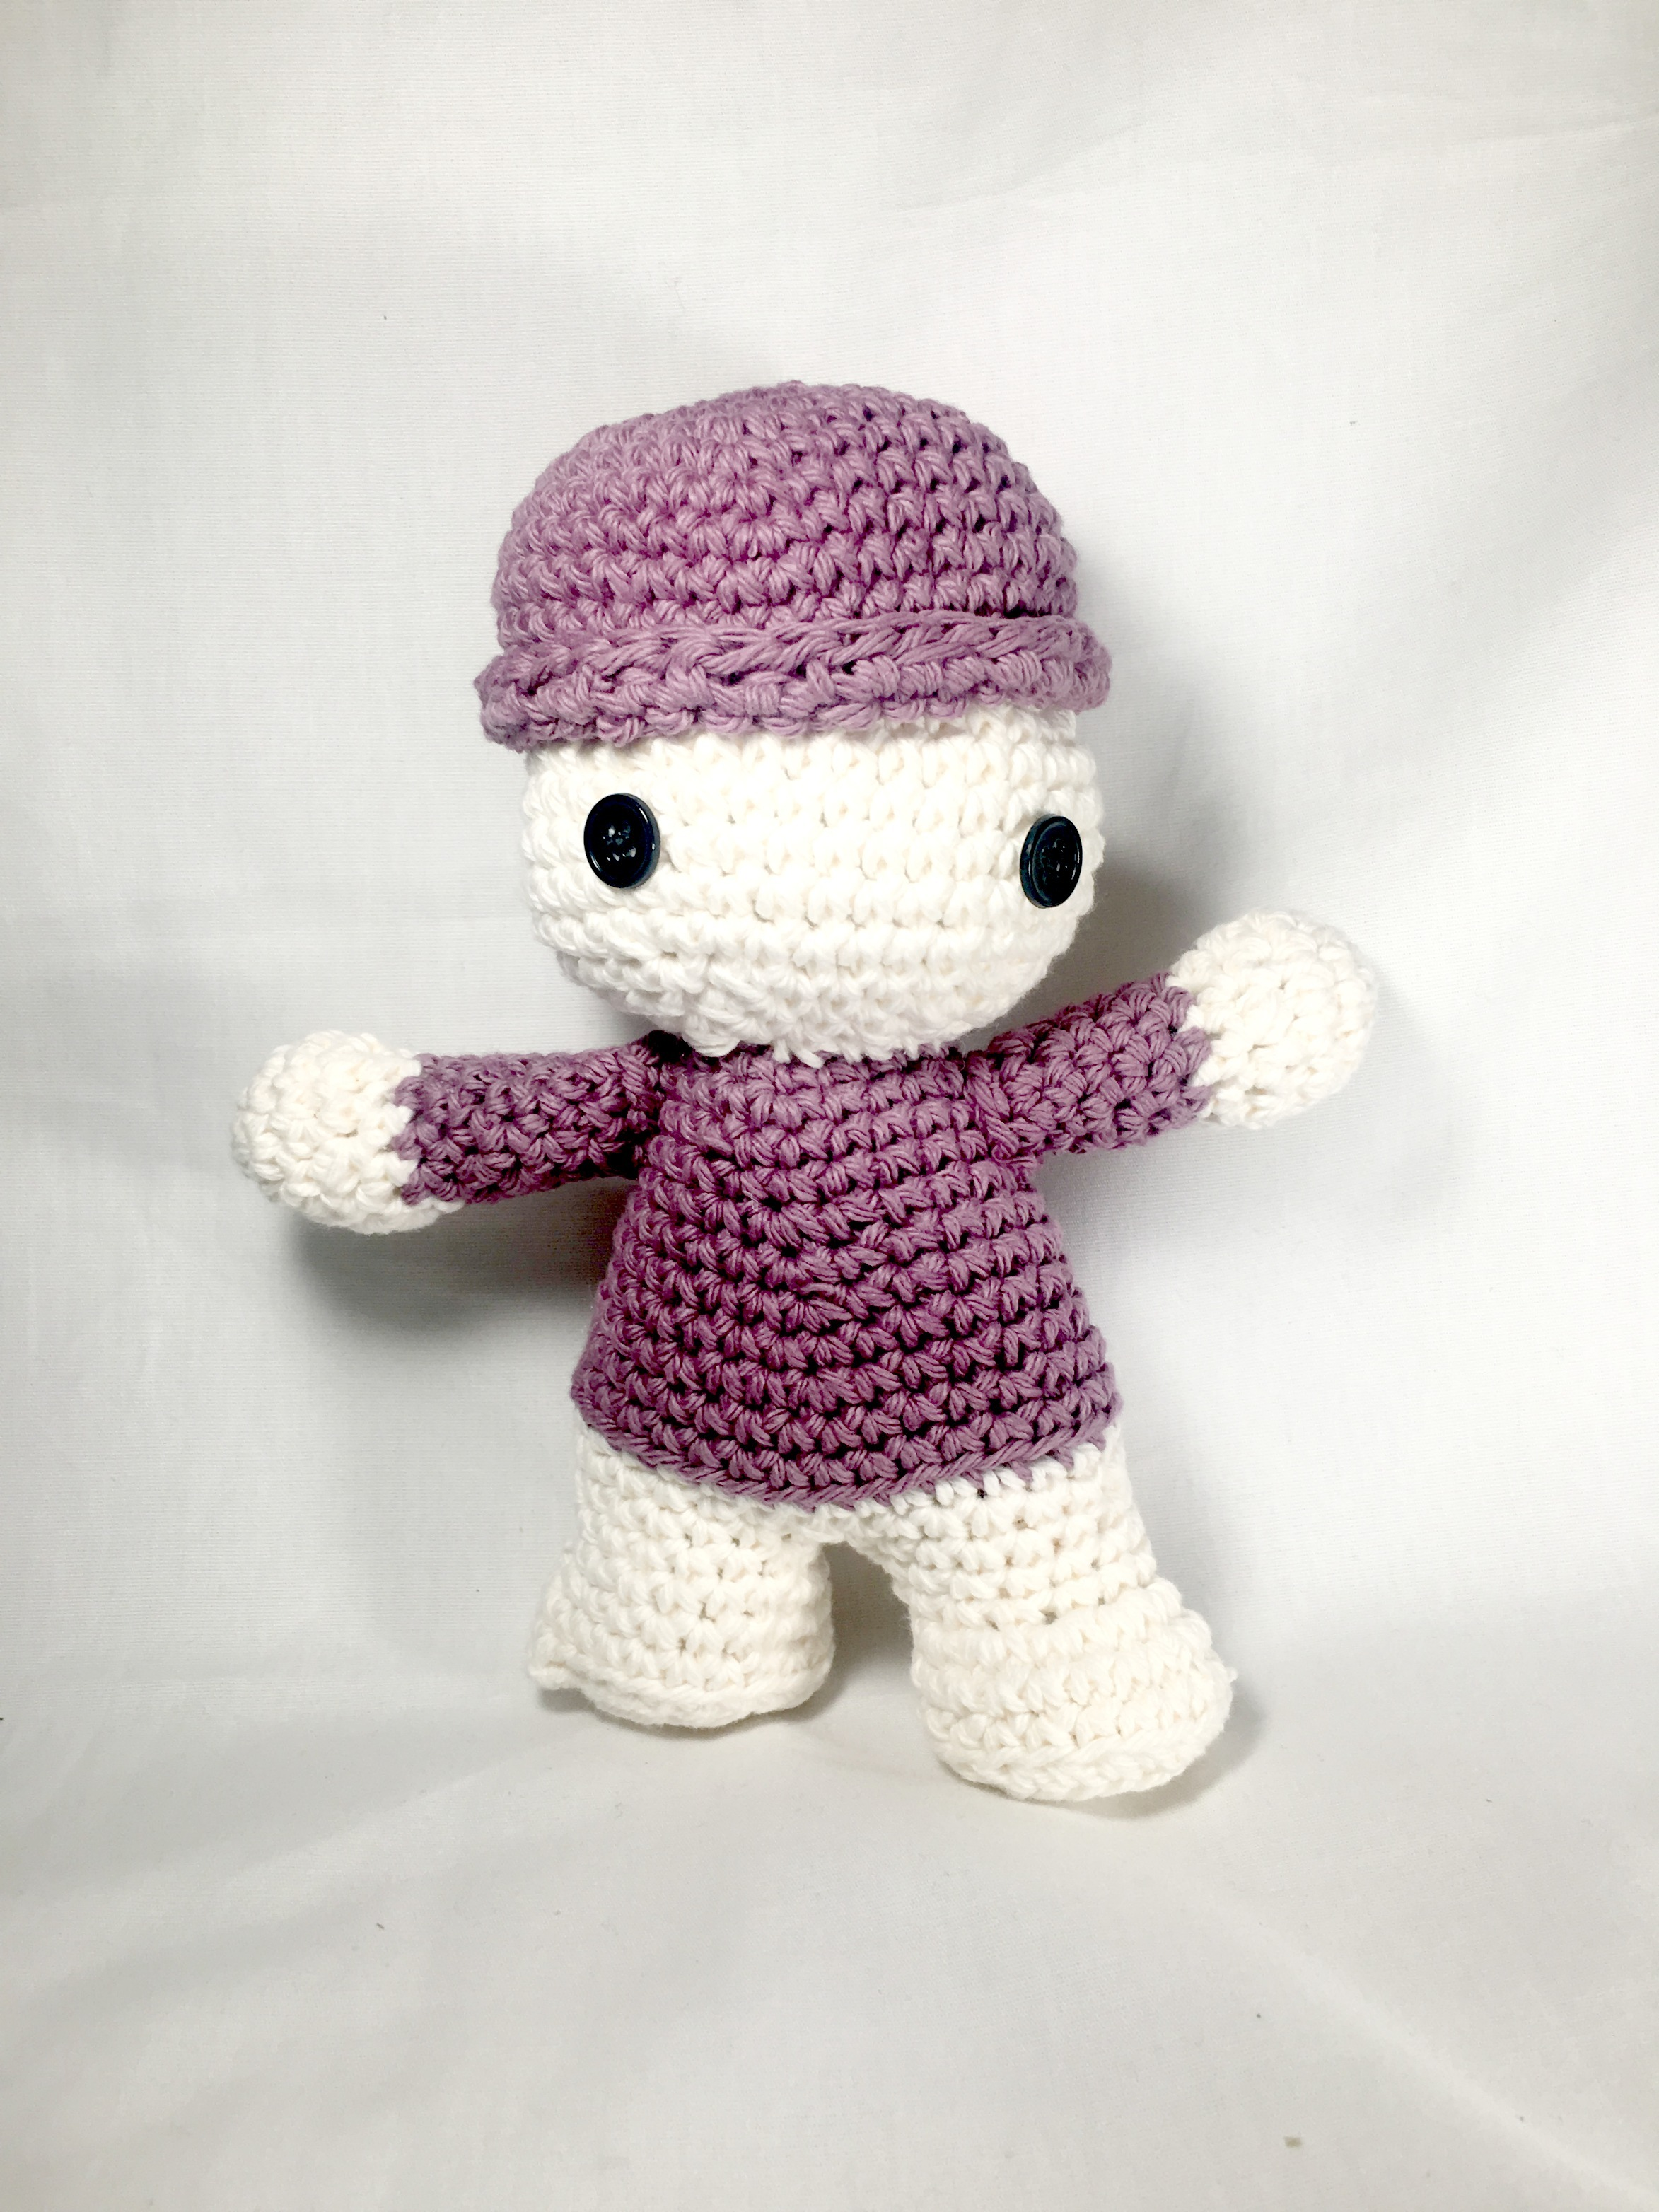 Amigurumi Pattern Generator : Amigurumi Doll Pattern with Four Styles and more!